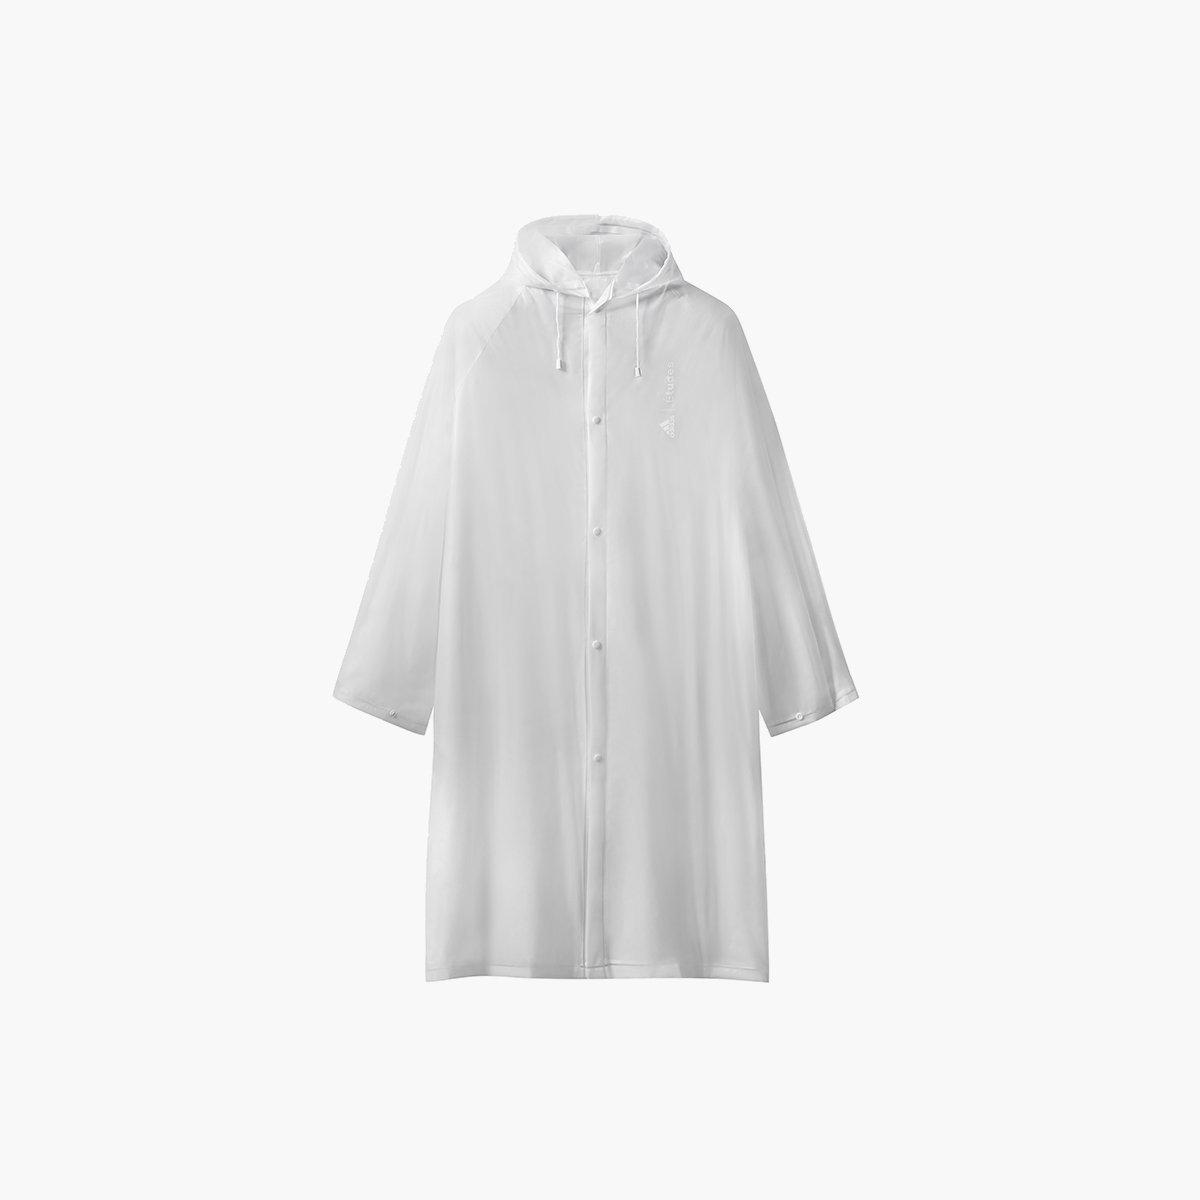 b7c7afe0937 adidas Originals X Ètudes Rain Cape in White - Lyst